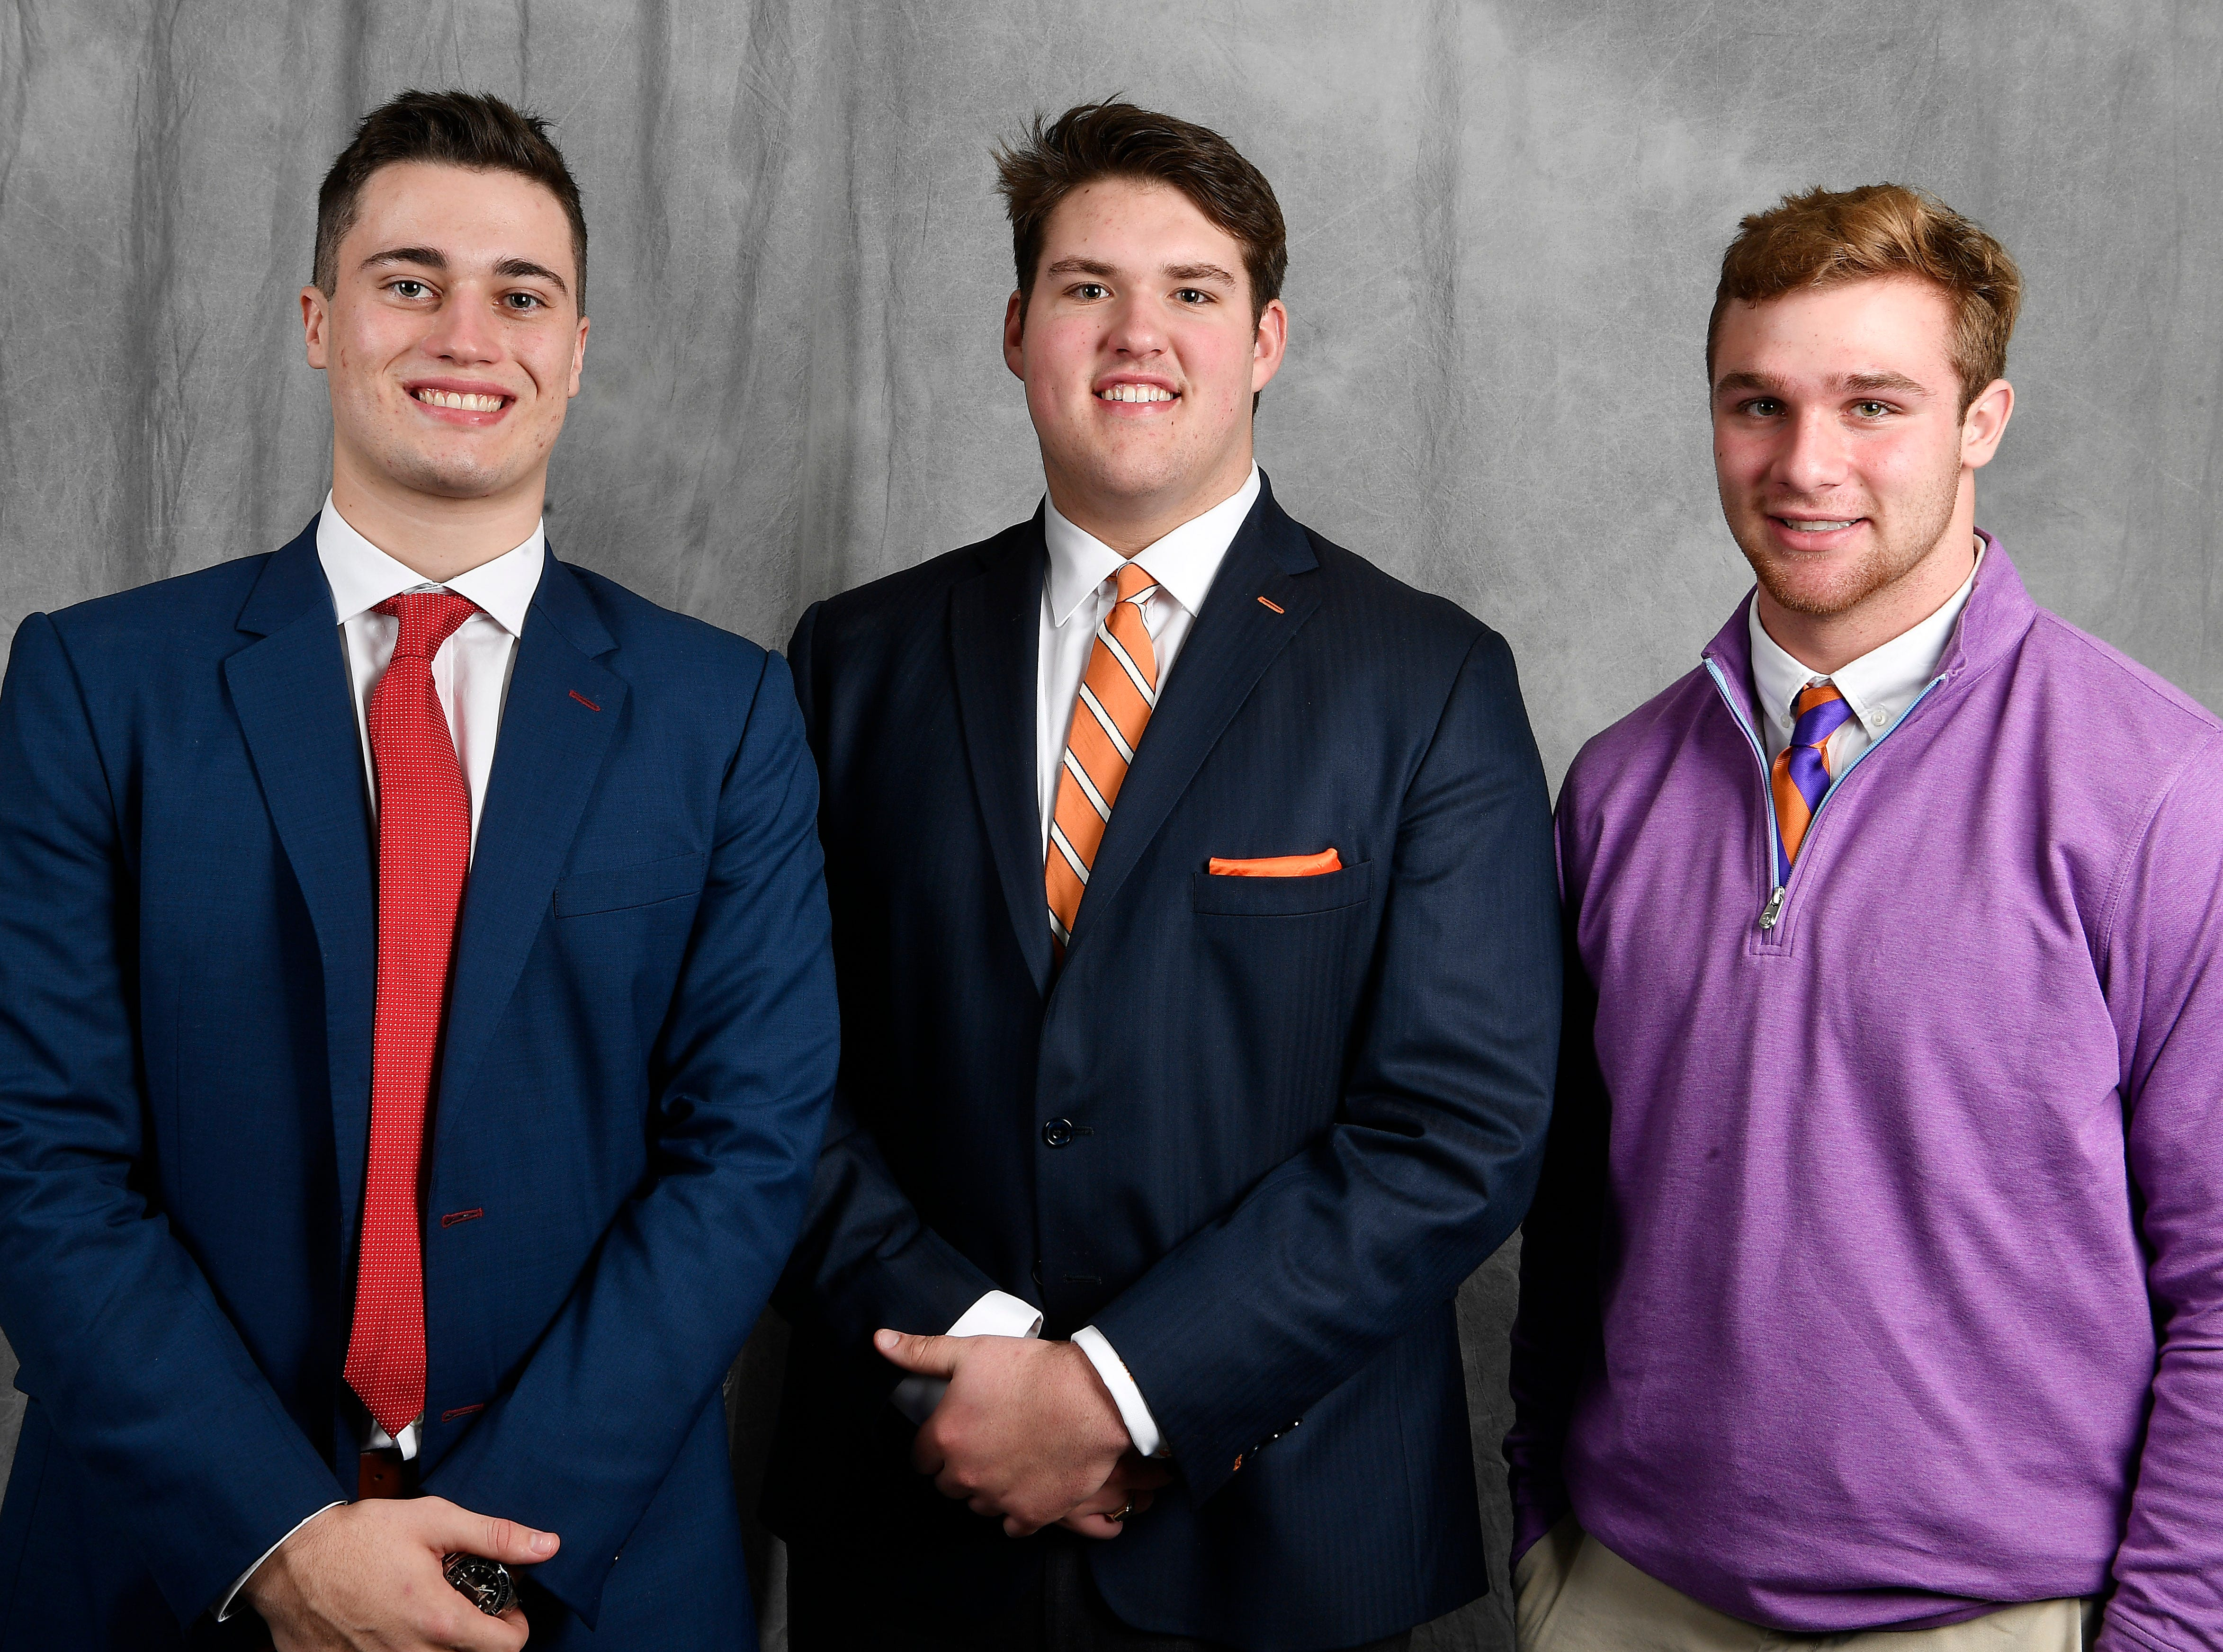 Members of the Tennessean's Dandy Dozen include MBA's Jackson Hannah, MBA's Jackson Lampley and Clemson's Kane Patterson.